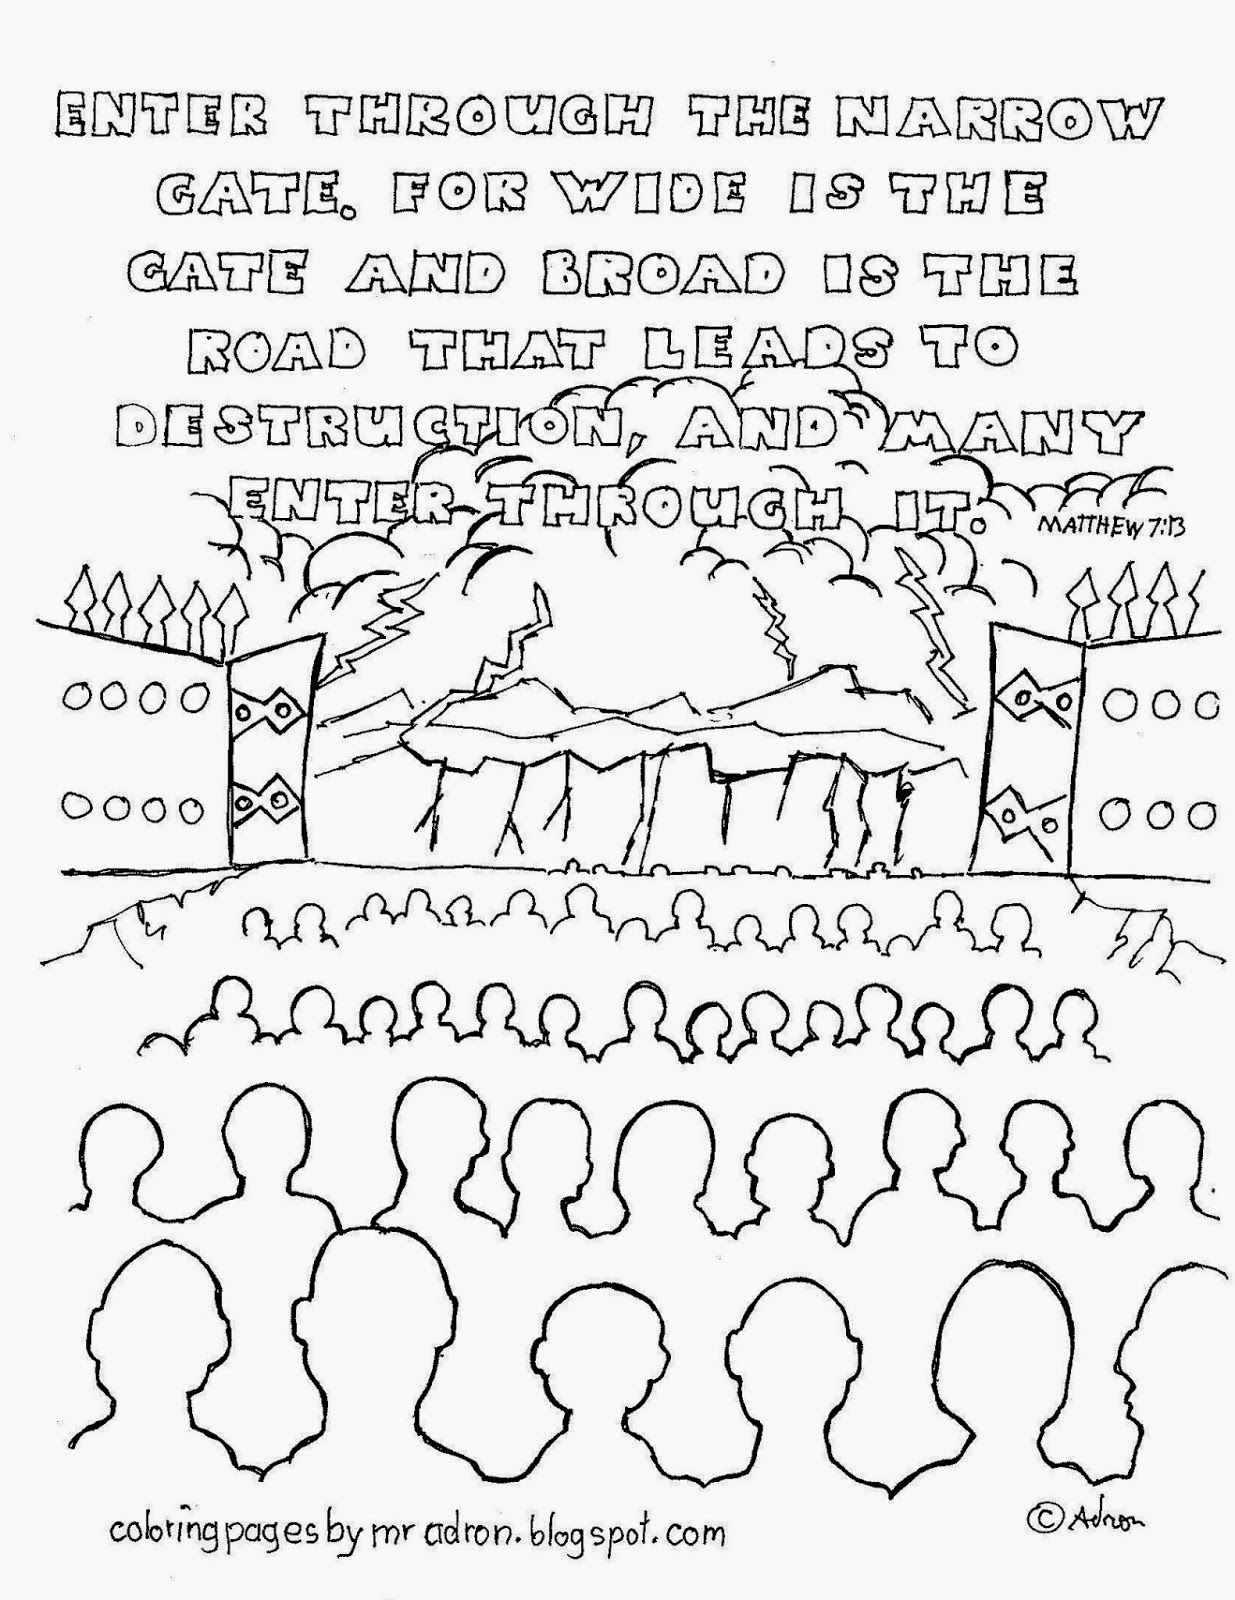 Coloring Pages For Kids By Mr Adron Wide Is The Gate Coloring Page Matthew 7 13